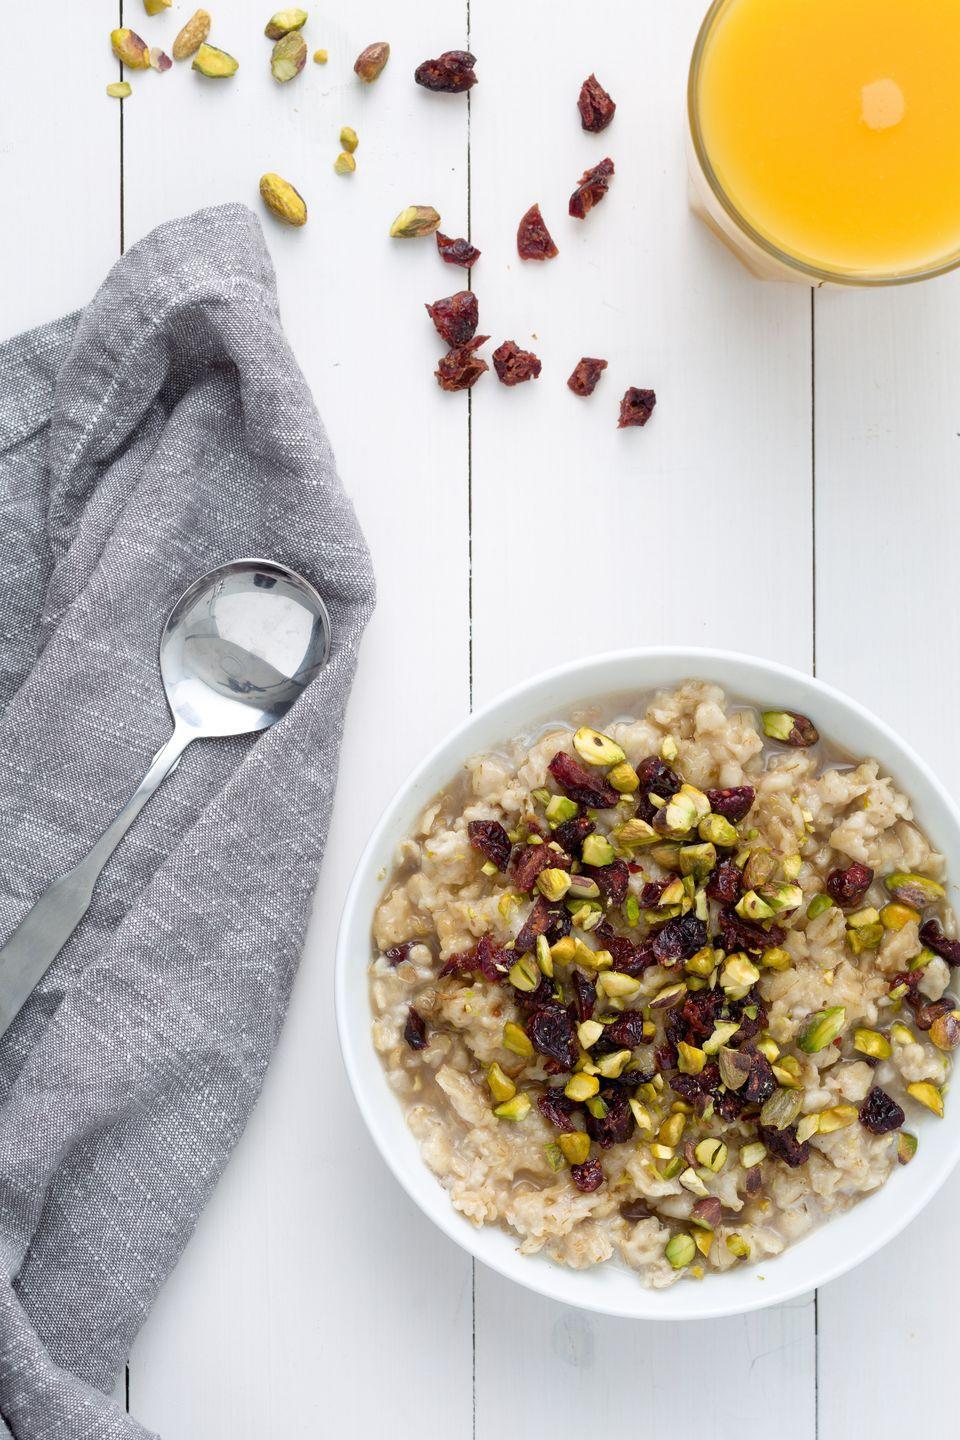 "<p>It's no secret that oatmeal is full of fiber, but you might not know just how much this food can do for your health. Oats are thought to lower inflammation and bad (LDL) cholesterol, as well as help guard against high blood pressure, type 2 diabetes, and weight gain.</p><p><strong>Recipe: <a href=""https://www.delish.com/cooking/recipe-ideas/recipes/a44505/maple-oatmeal-with-cranberries-and-pistachios-recipe/"" rel=""nofollow noopener"" target=""_blank"" data-ylk=""slk:Maple Oatmeal With Cranberries And Pistachios"" class=""link rapid-noclick-resp"">Maple Oatmeal With Cranberries And Pistachios</a> </strong></p>"